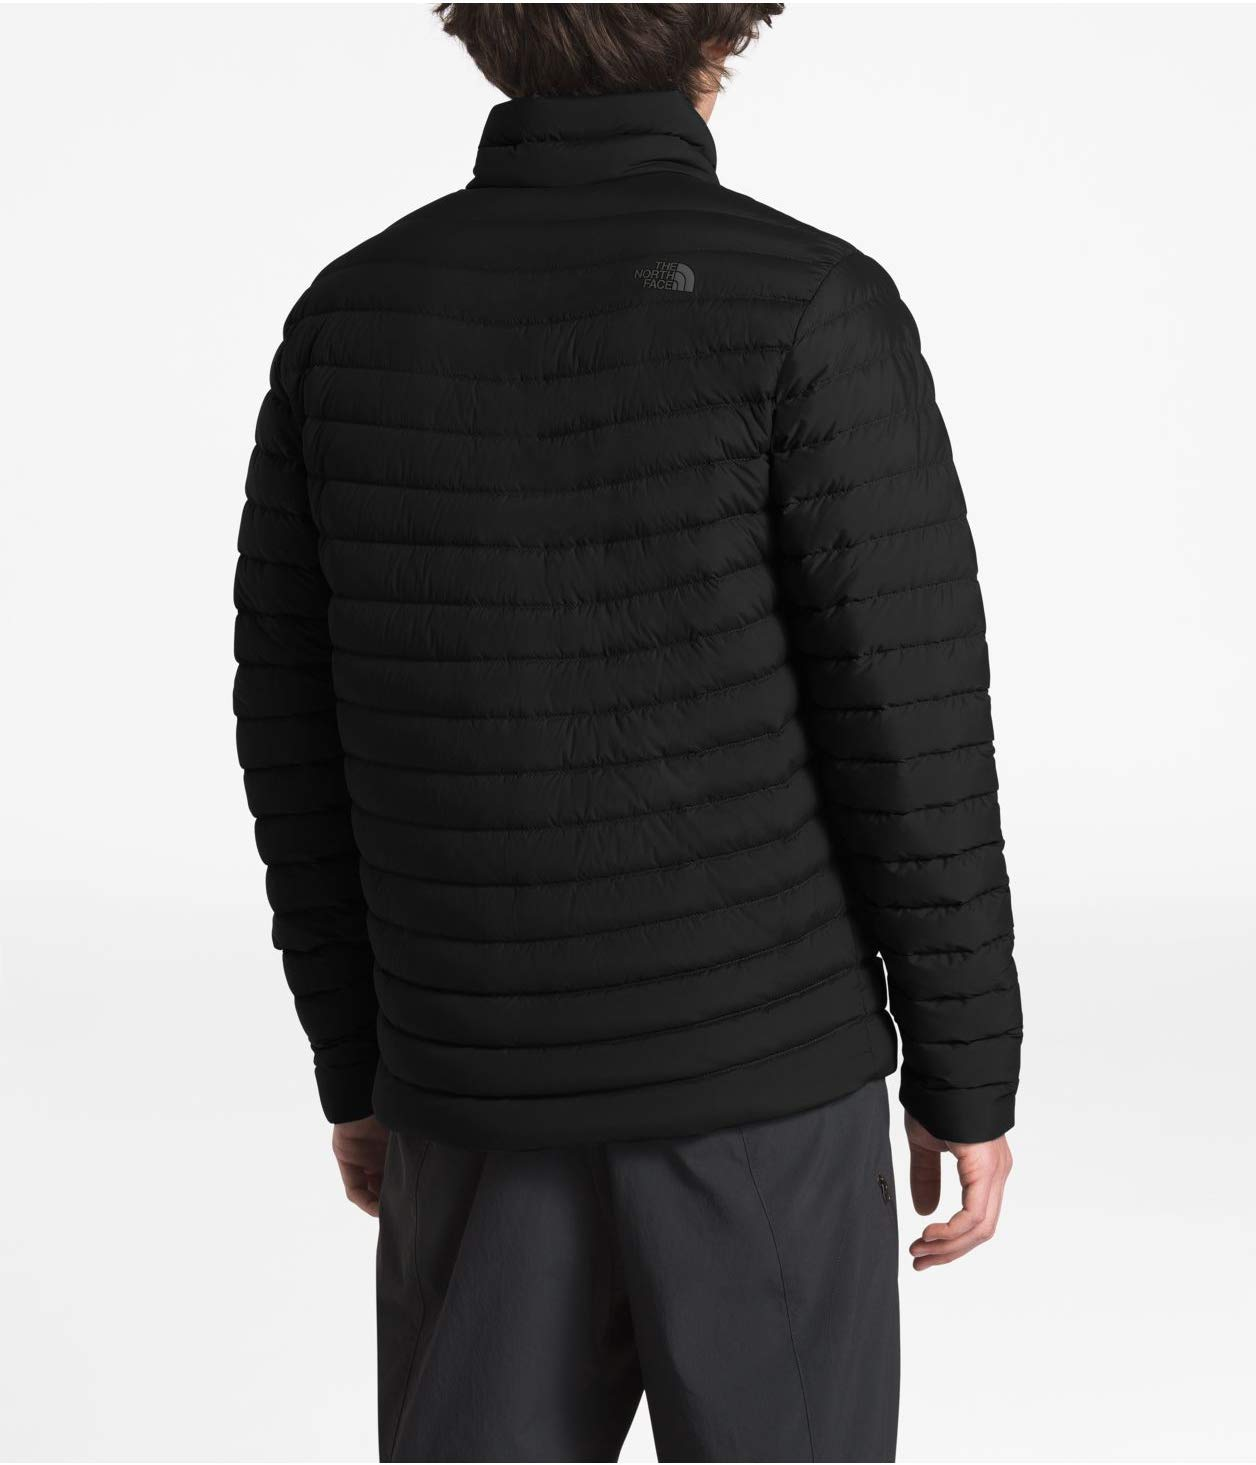 Amazon.com  The North Face Stretch Down Jacket - Men s  Sports   Outdoors 67f0162fd